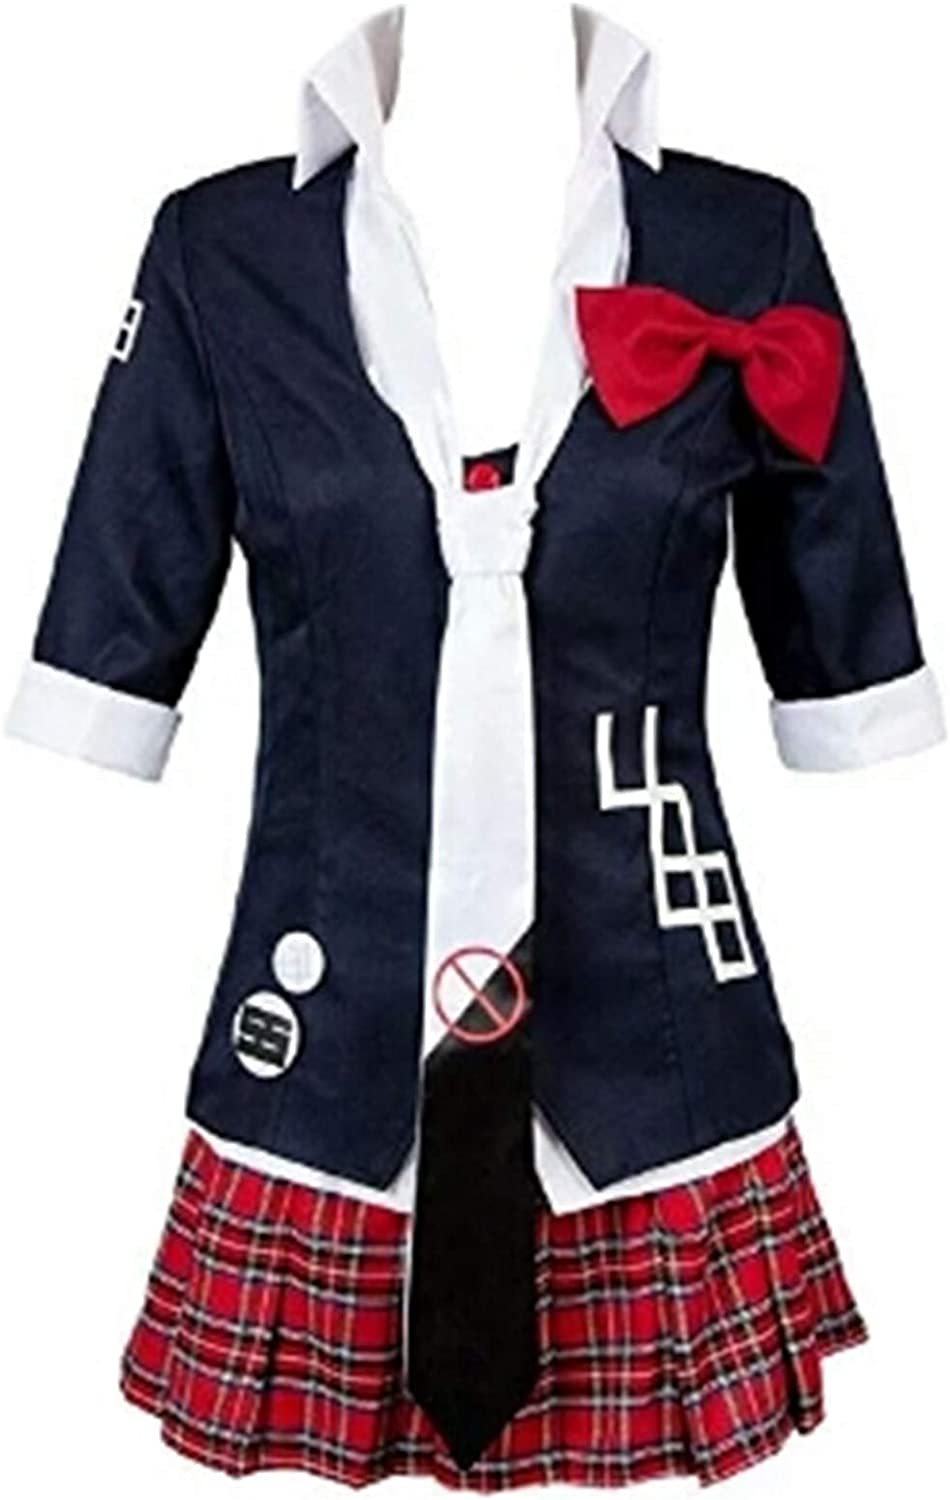 Double Villages Anime Danganronpa Junko Enoshima Cosplay Costume Polyester Uniform Costume Suit